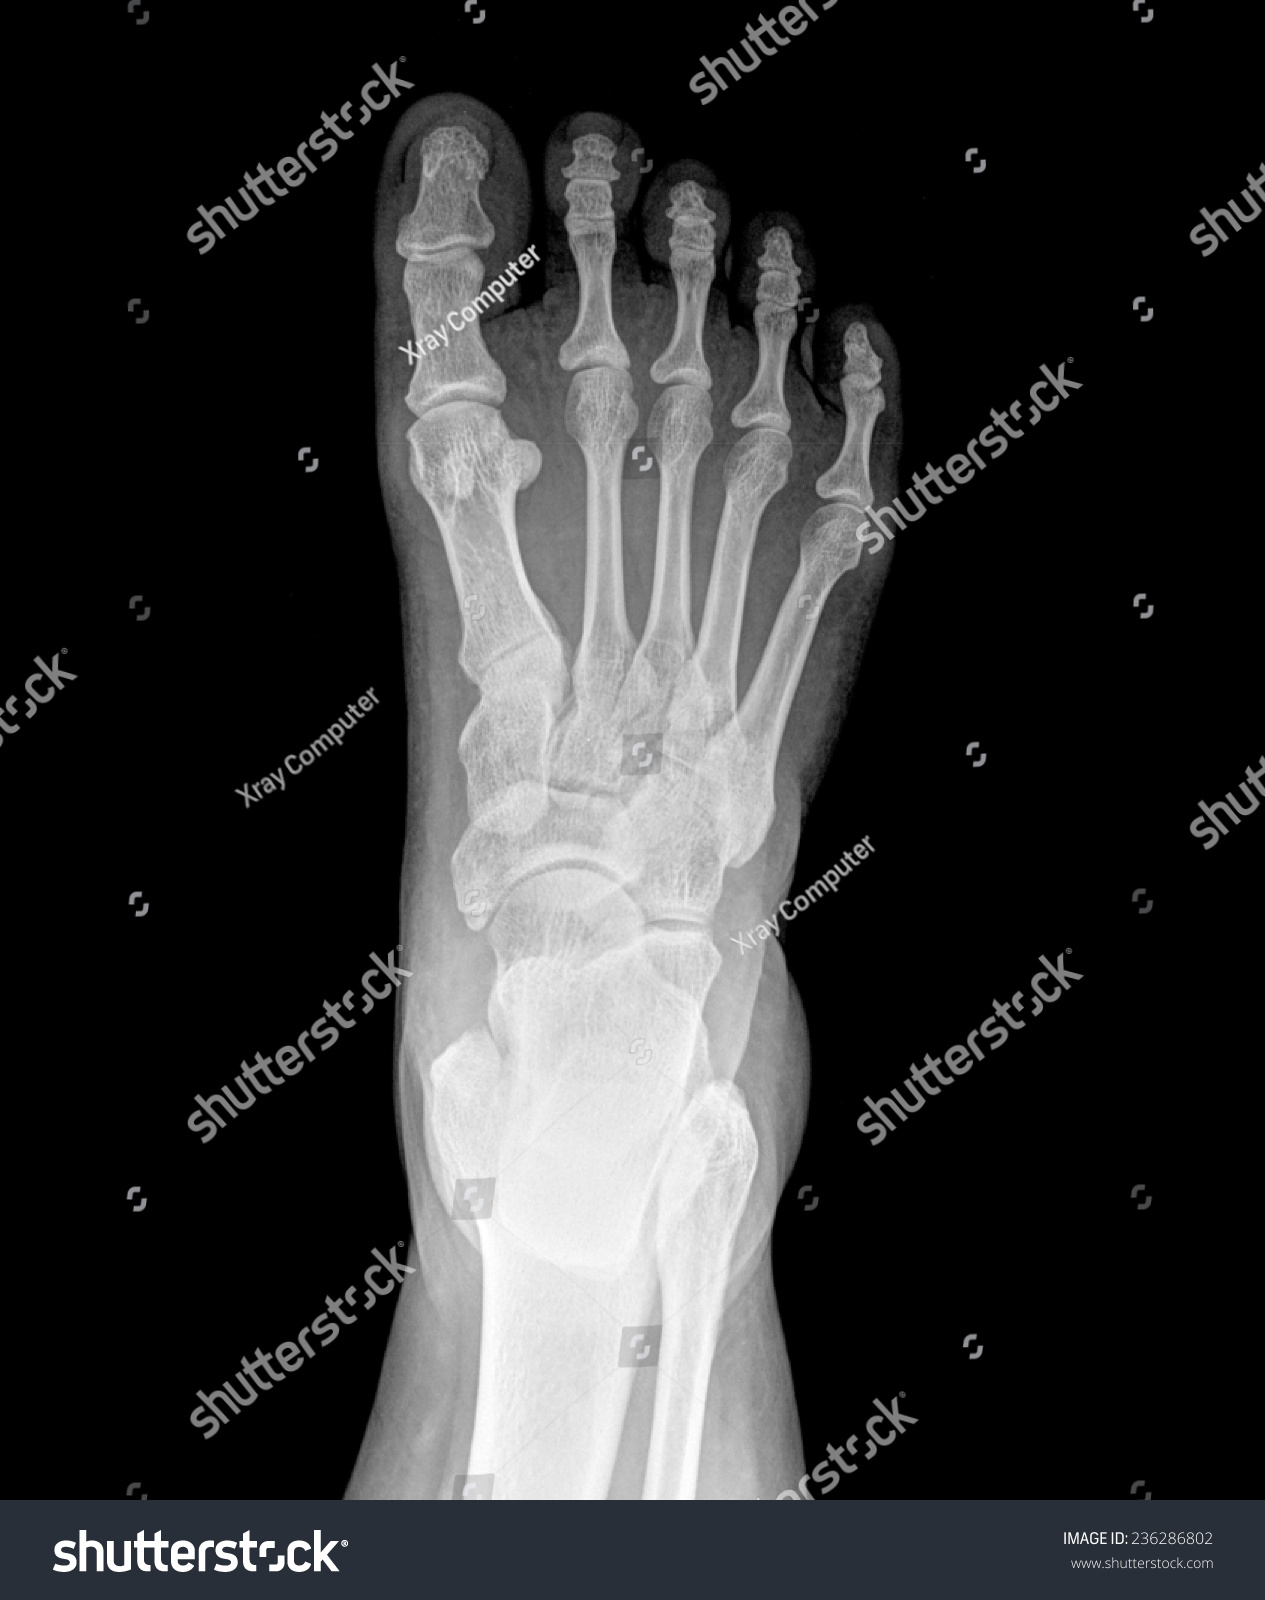 Top View Humans Feet Bones Under Stock Photo (Edit Now) 236286802 ...